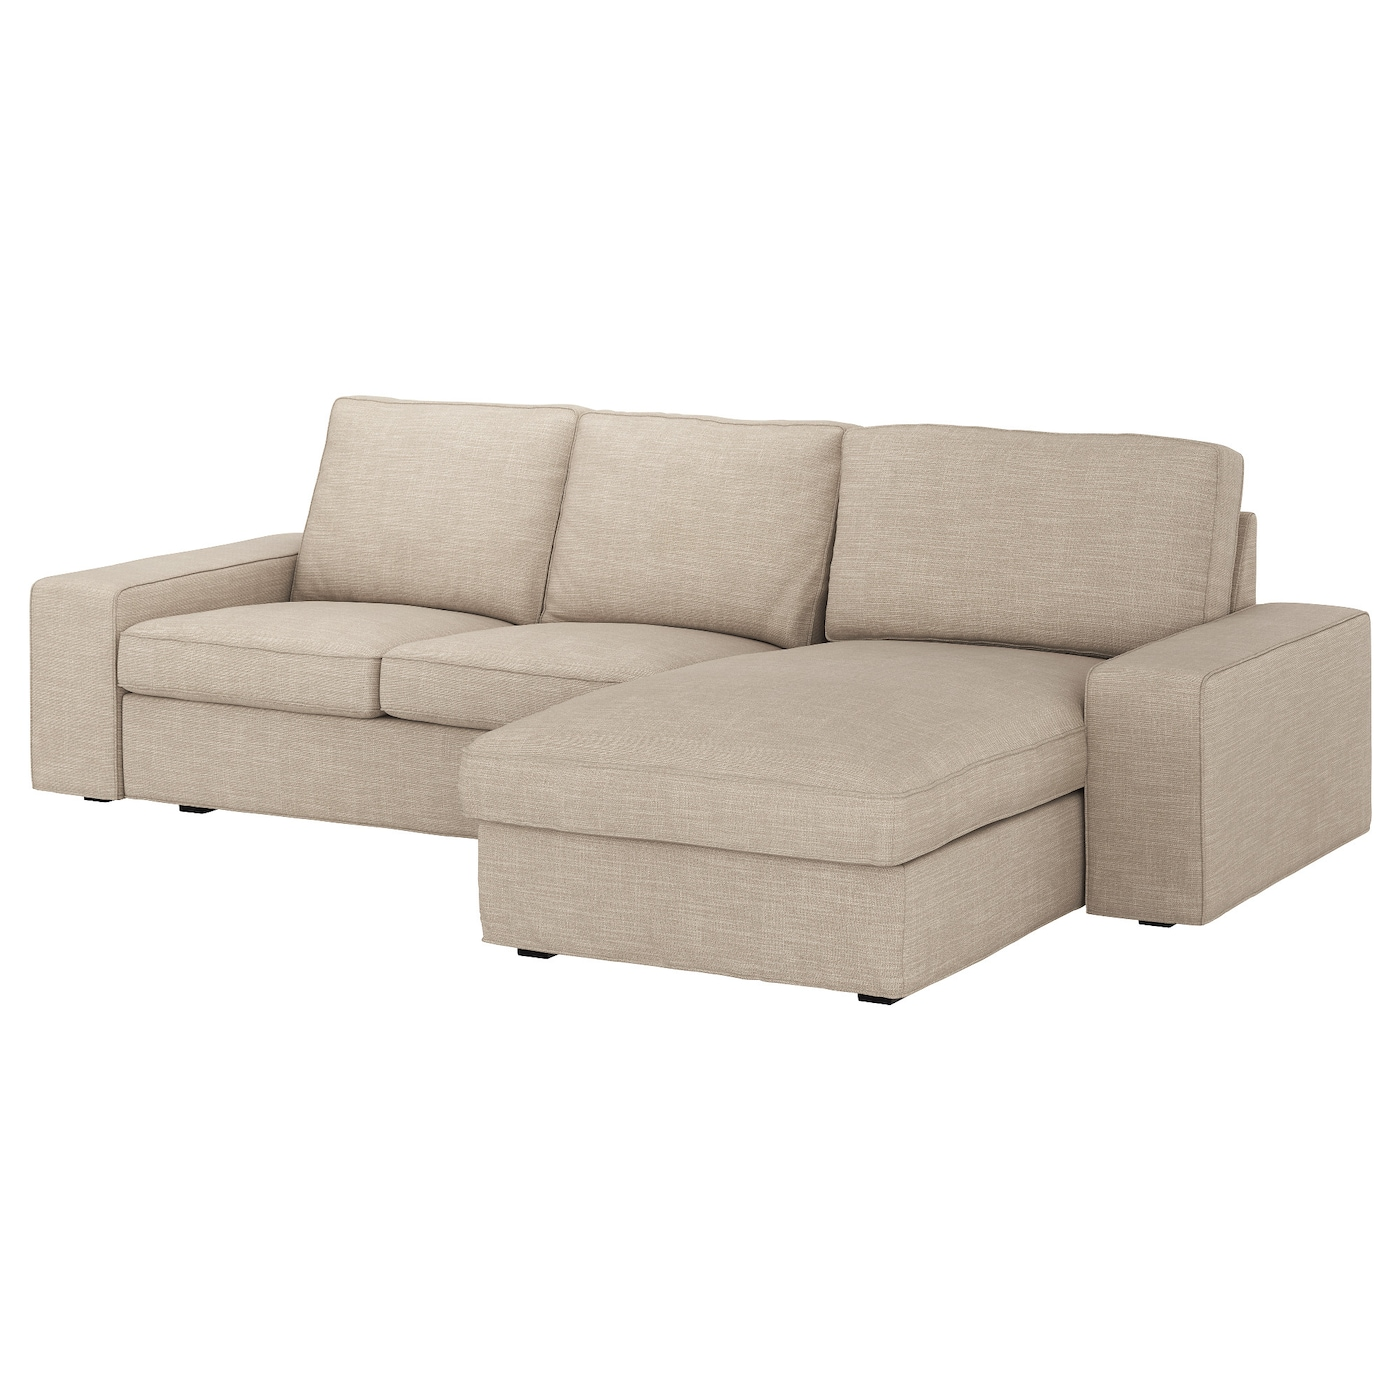 Kivik 3 seat sofa with chaise longue hillared beige ikea for Chaise longue sofa cama